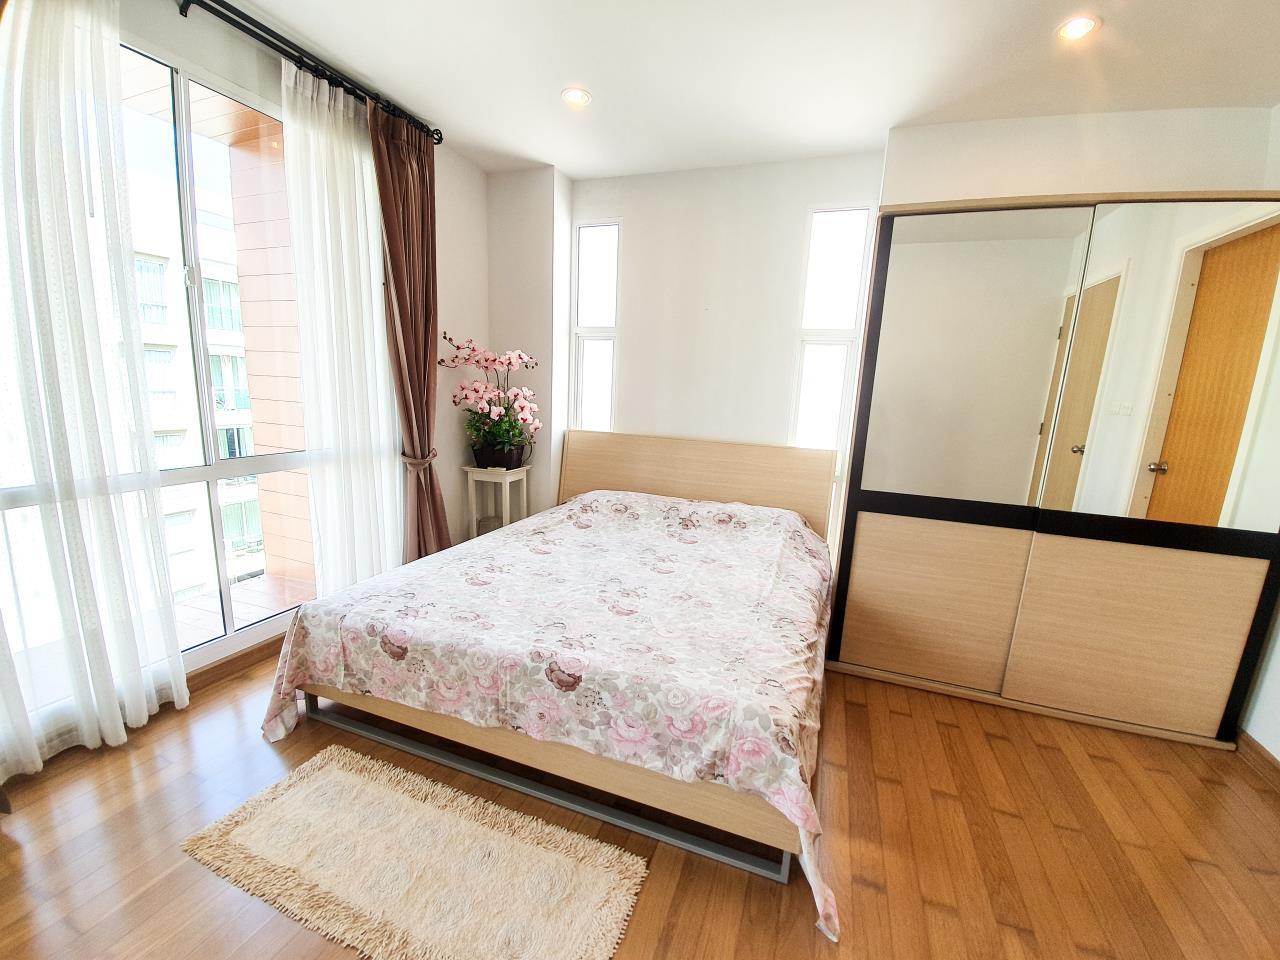 HOME - Real Estate Service Agency's The Breeze Hua Hin / 2 Beds (FOR RENT), เดอะ บรีซ หัวหิน / 2 ห้องนอน (ให้เช่า) T008 14